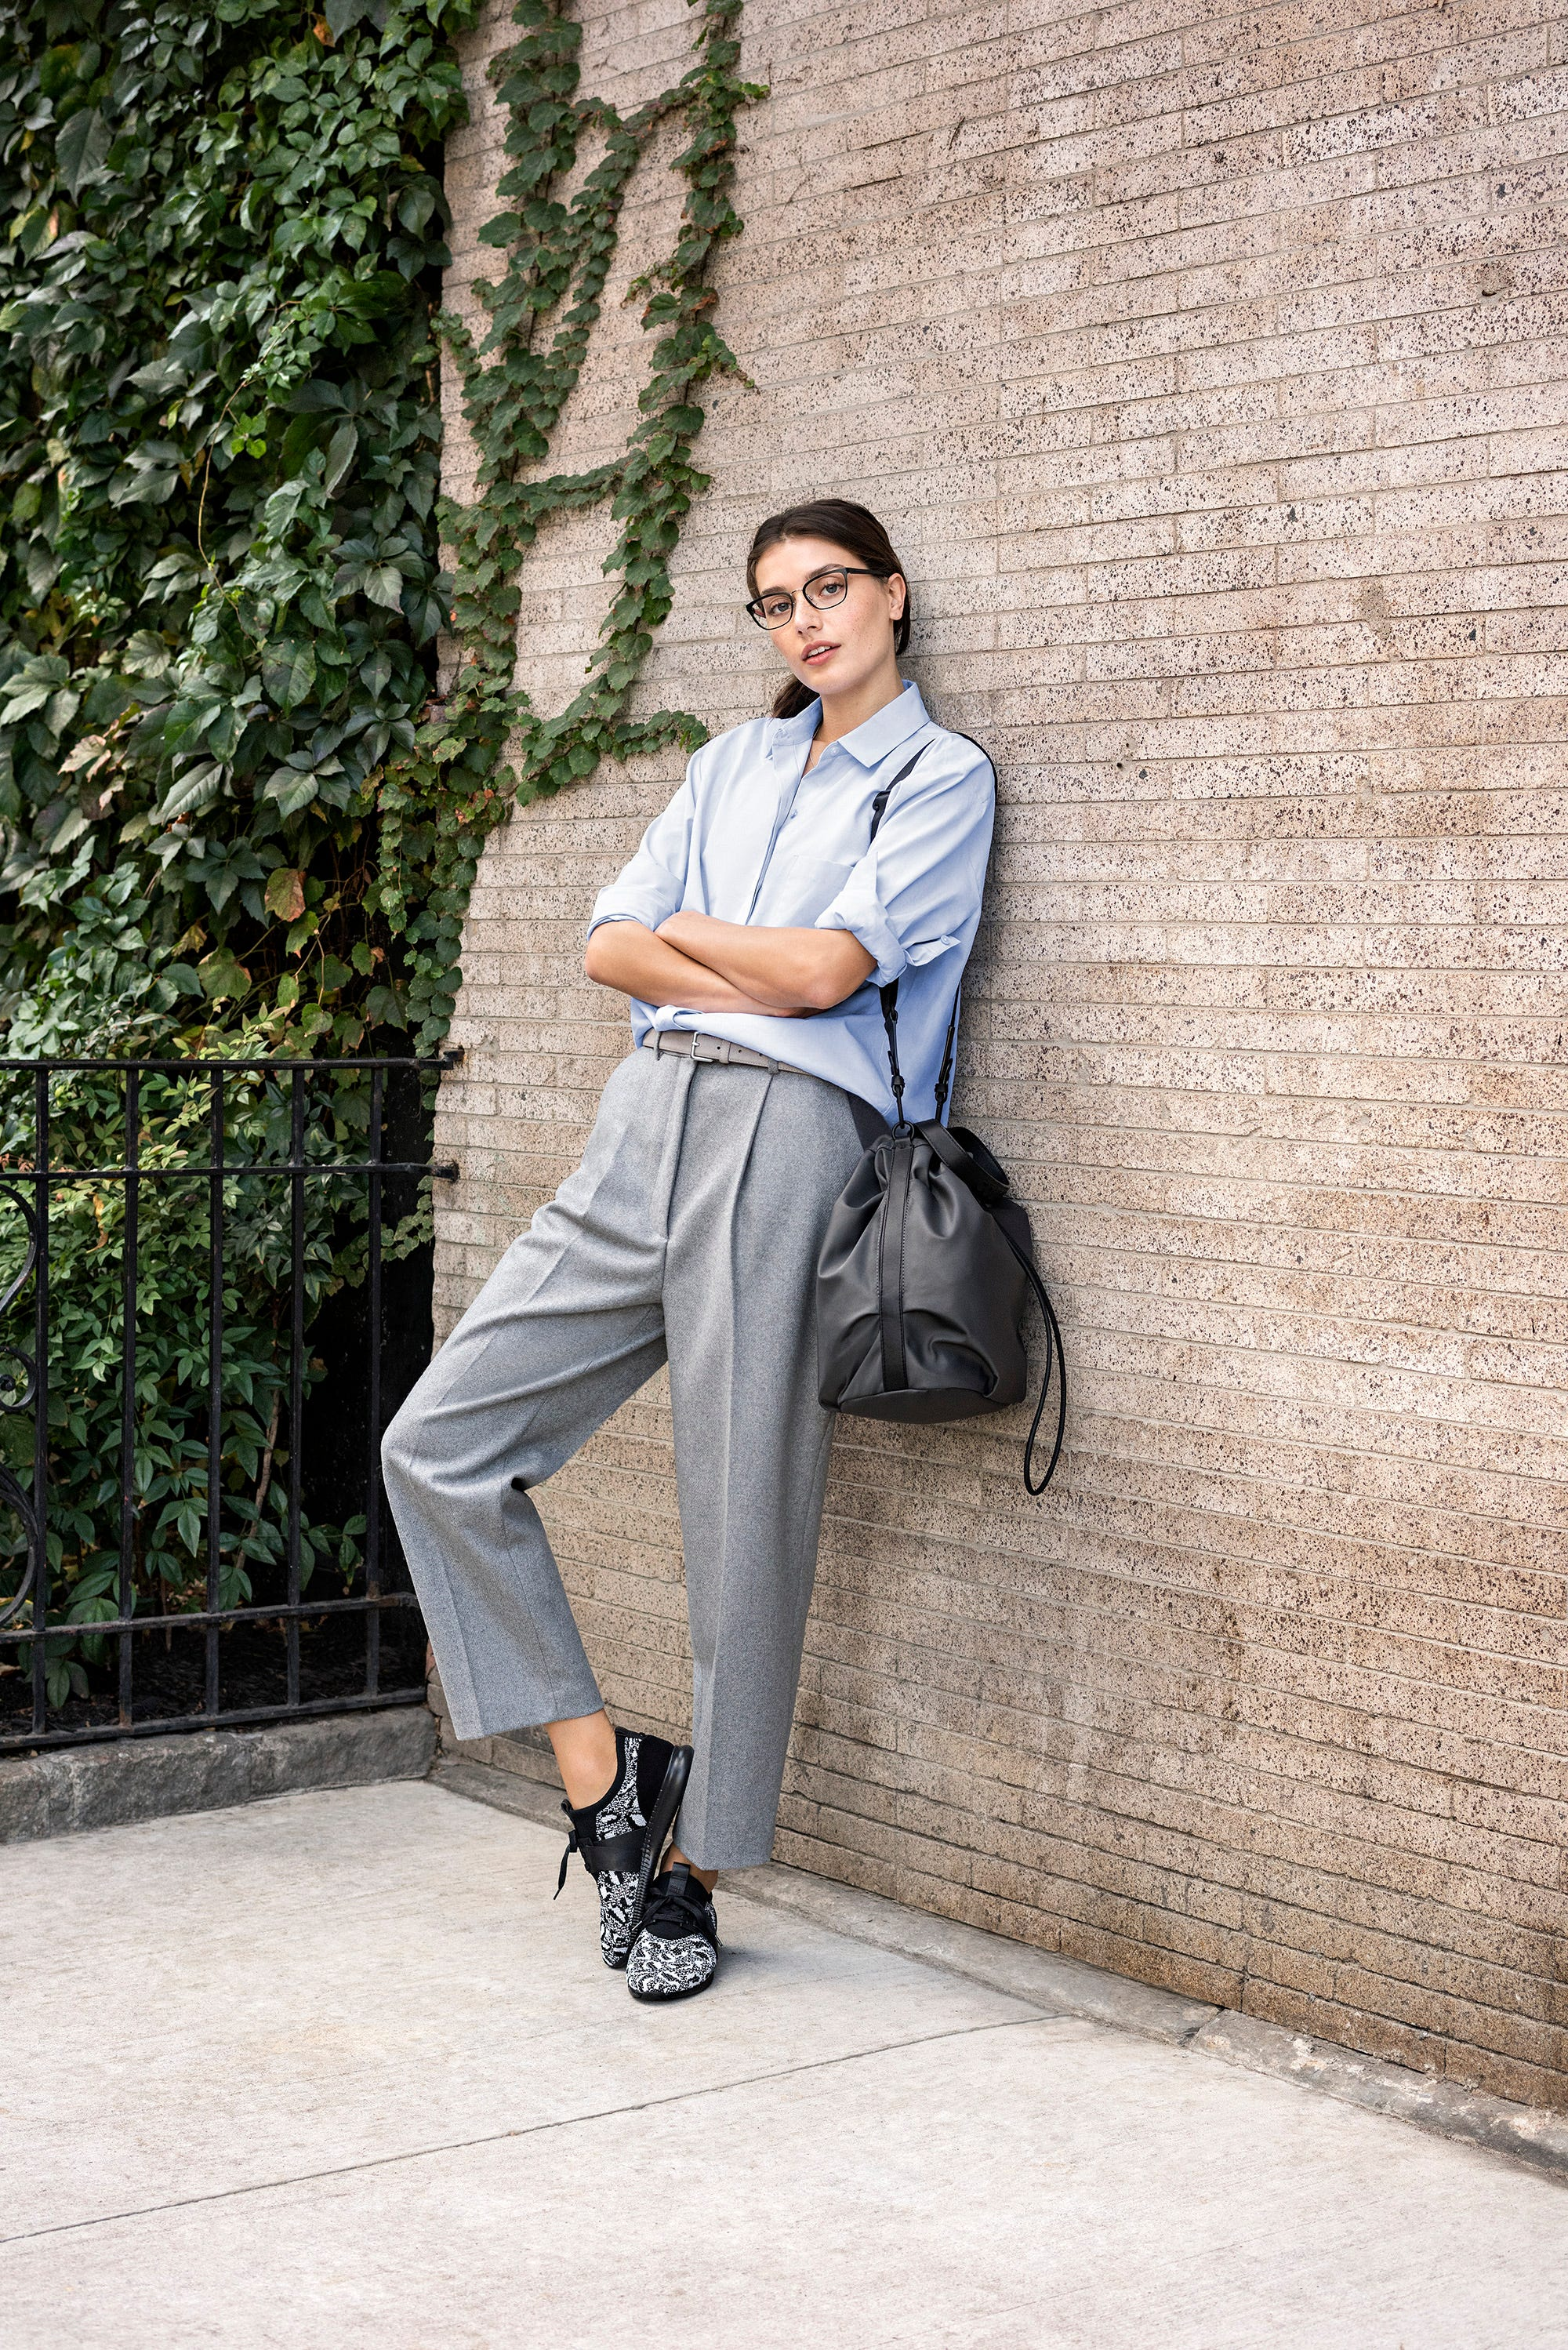 Cole Haan s New Collection Is Essential For Girls On-The-Go 569792a2e2e38